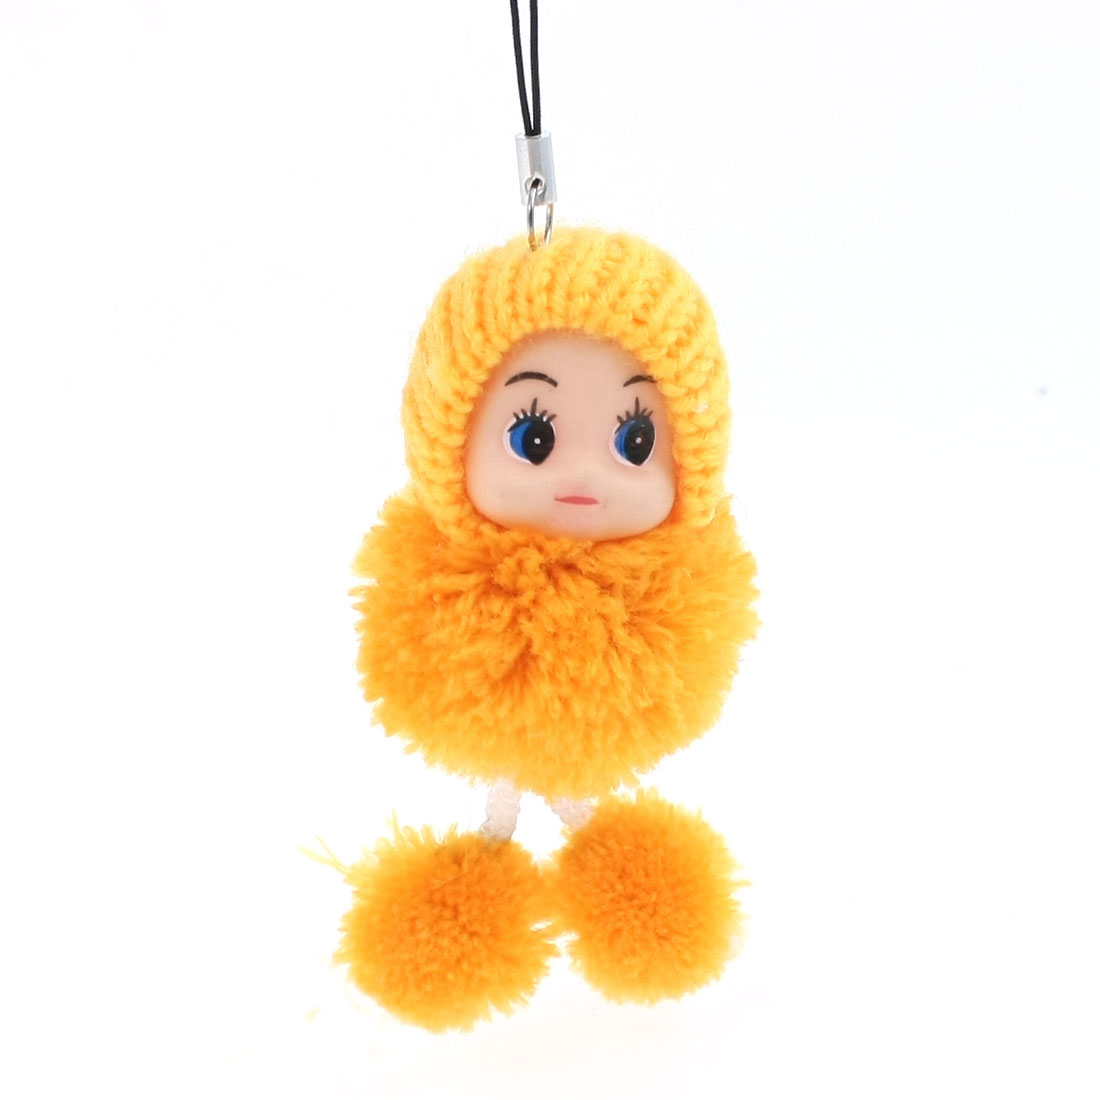 Knitted Hat Moppet Dangling Strap String Yellow for MP3 MP4 Mobile Phone